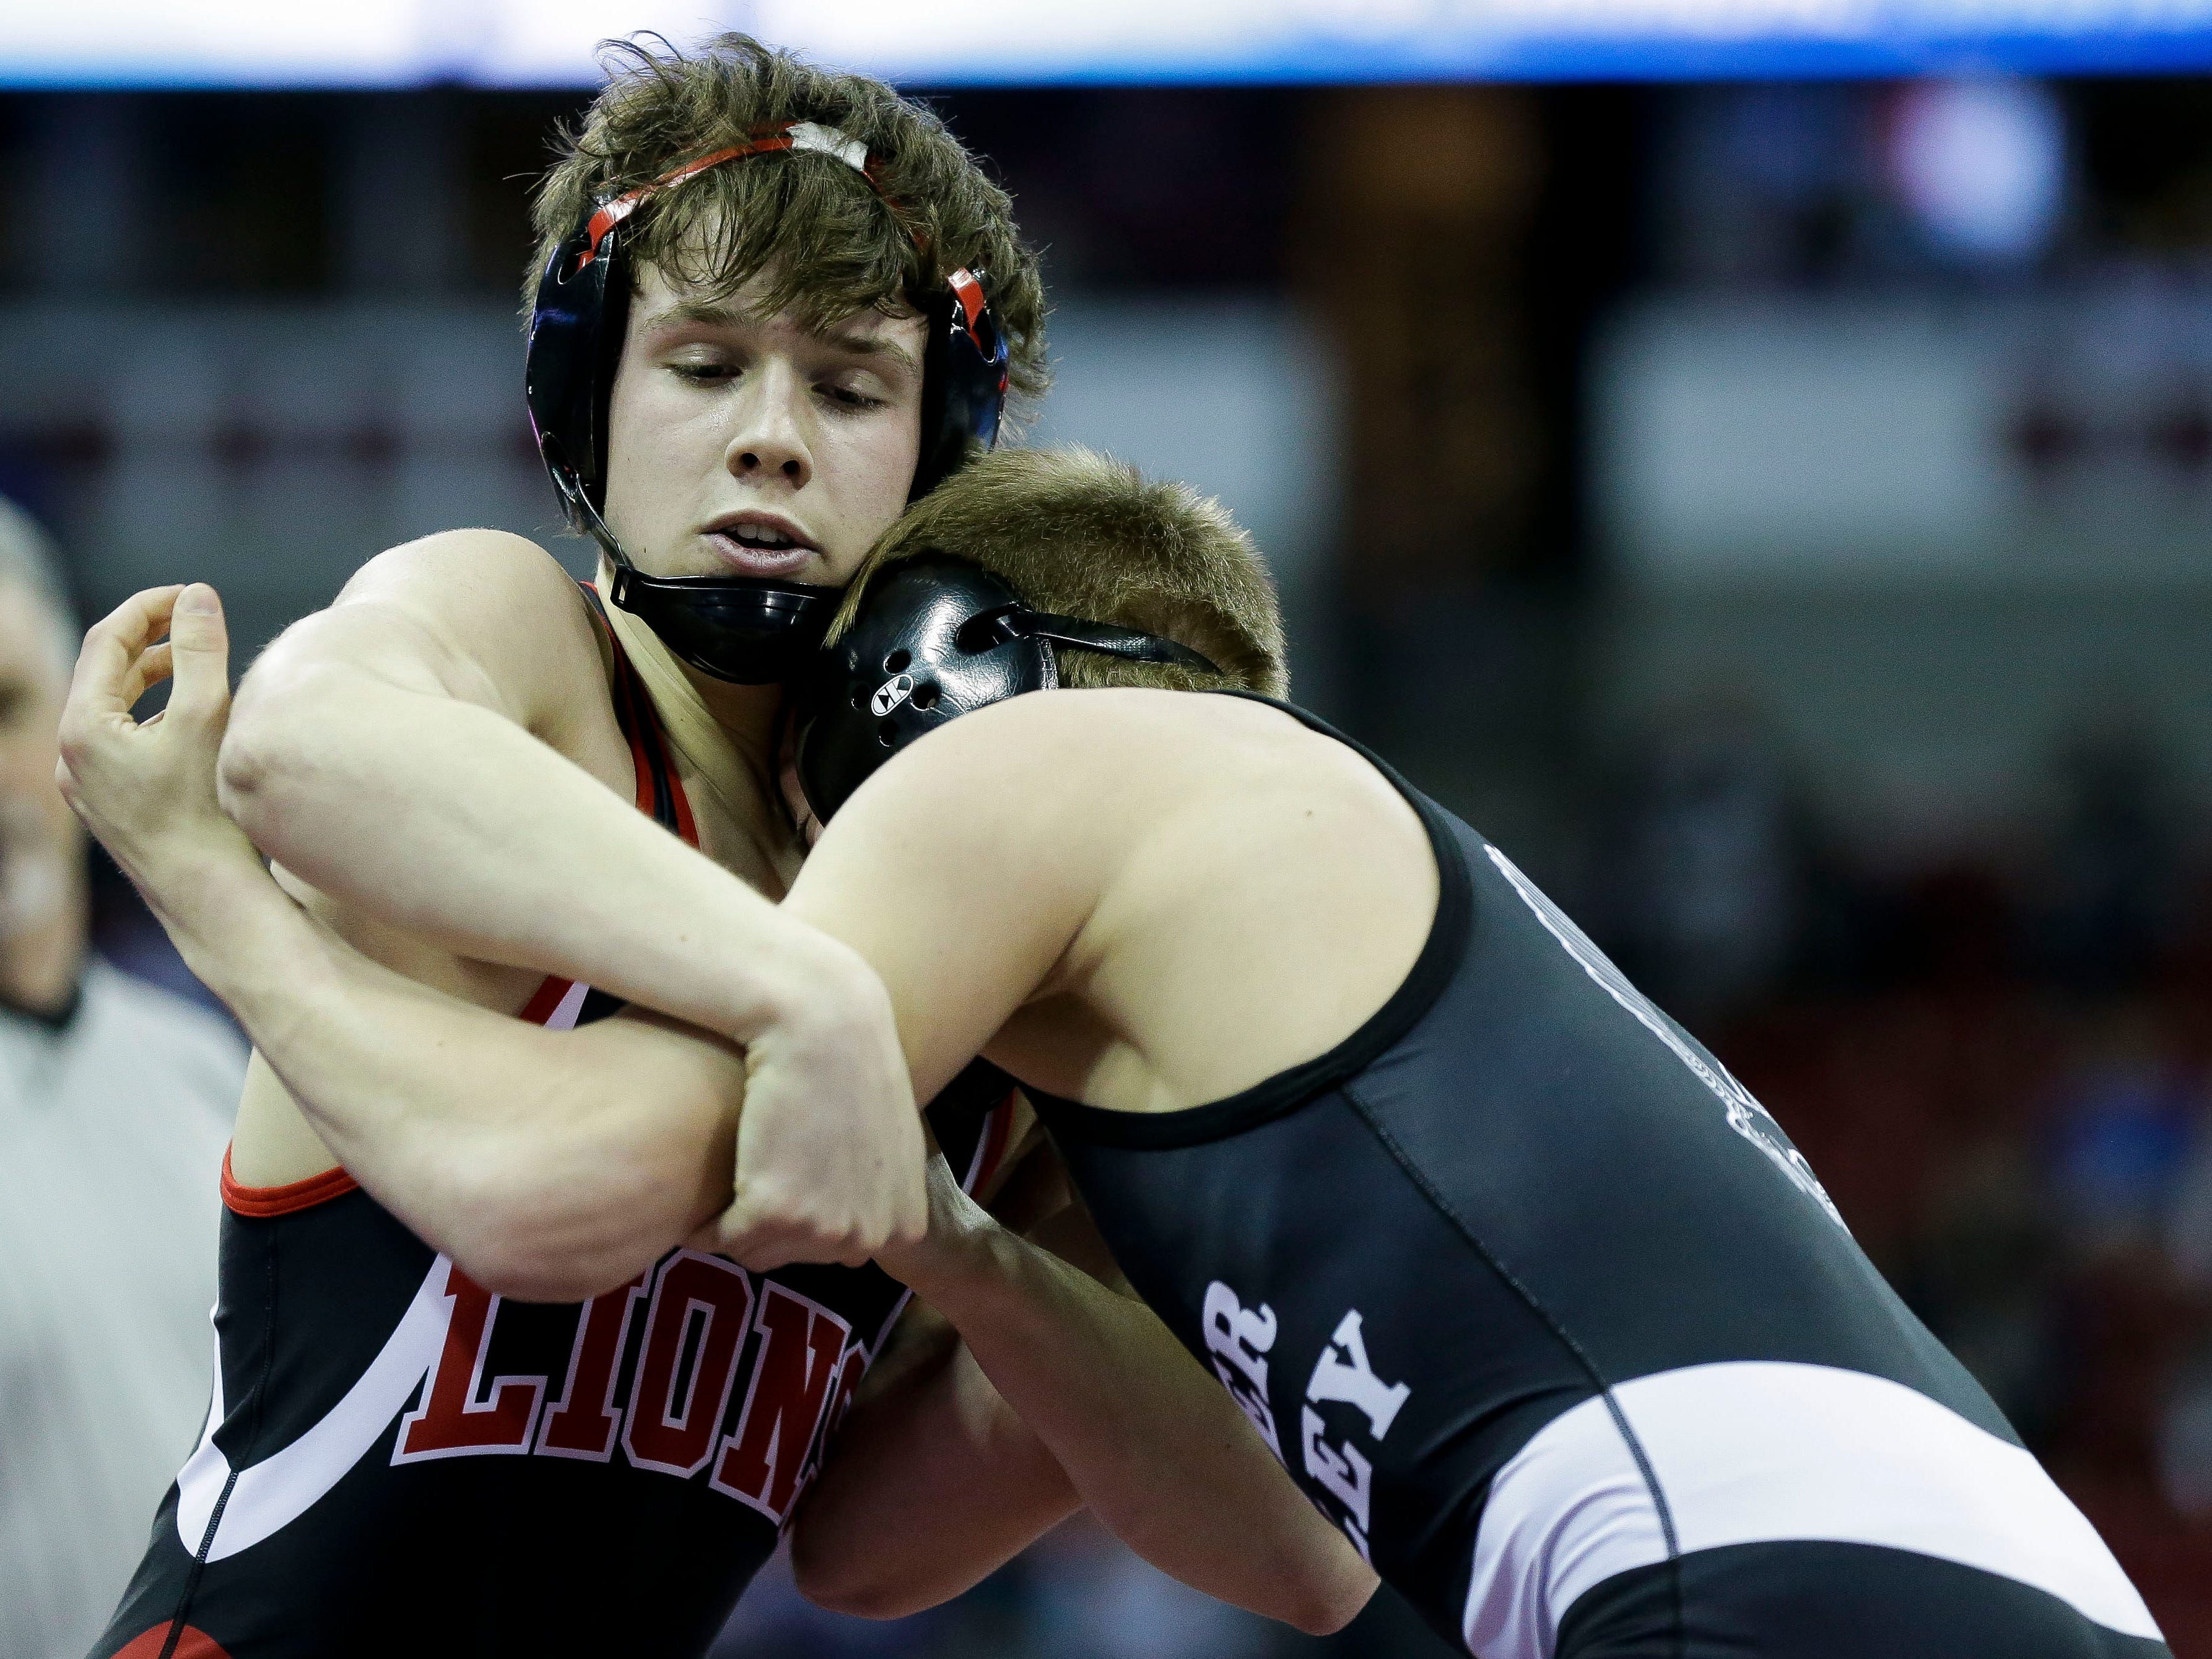 Lomira's Adam Sauer wrestles against River Valley's Devan Alt in a Division 2 138-pound preliminary match during the WIAA state wrestling tournament on Thursday, February 21, 2019, at the Kohl Center in Madison, Wis.